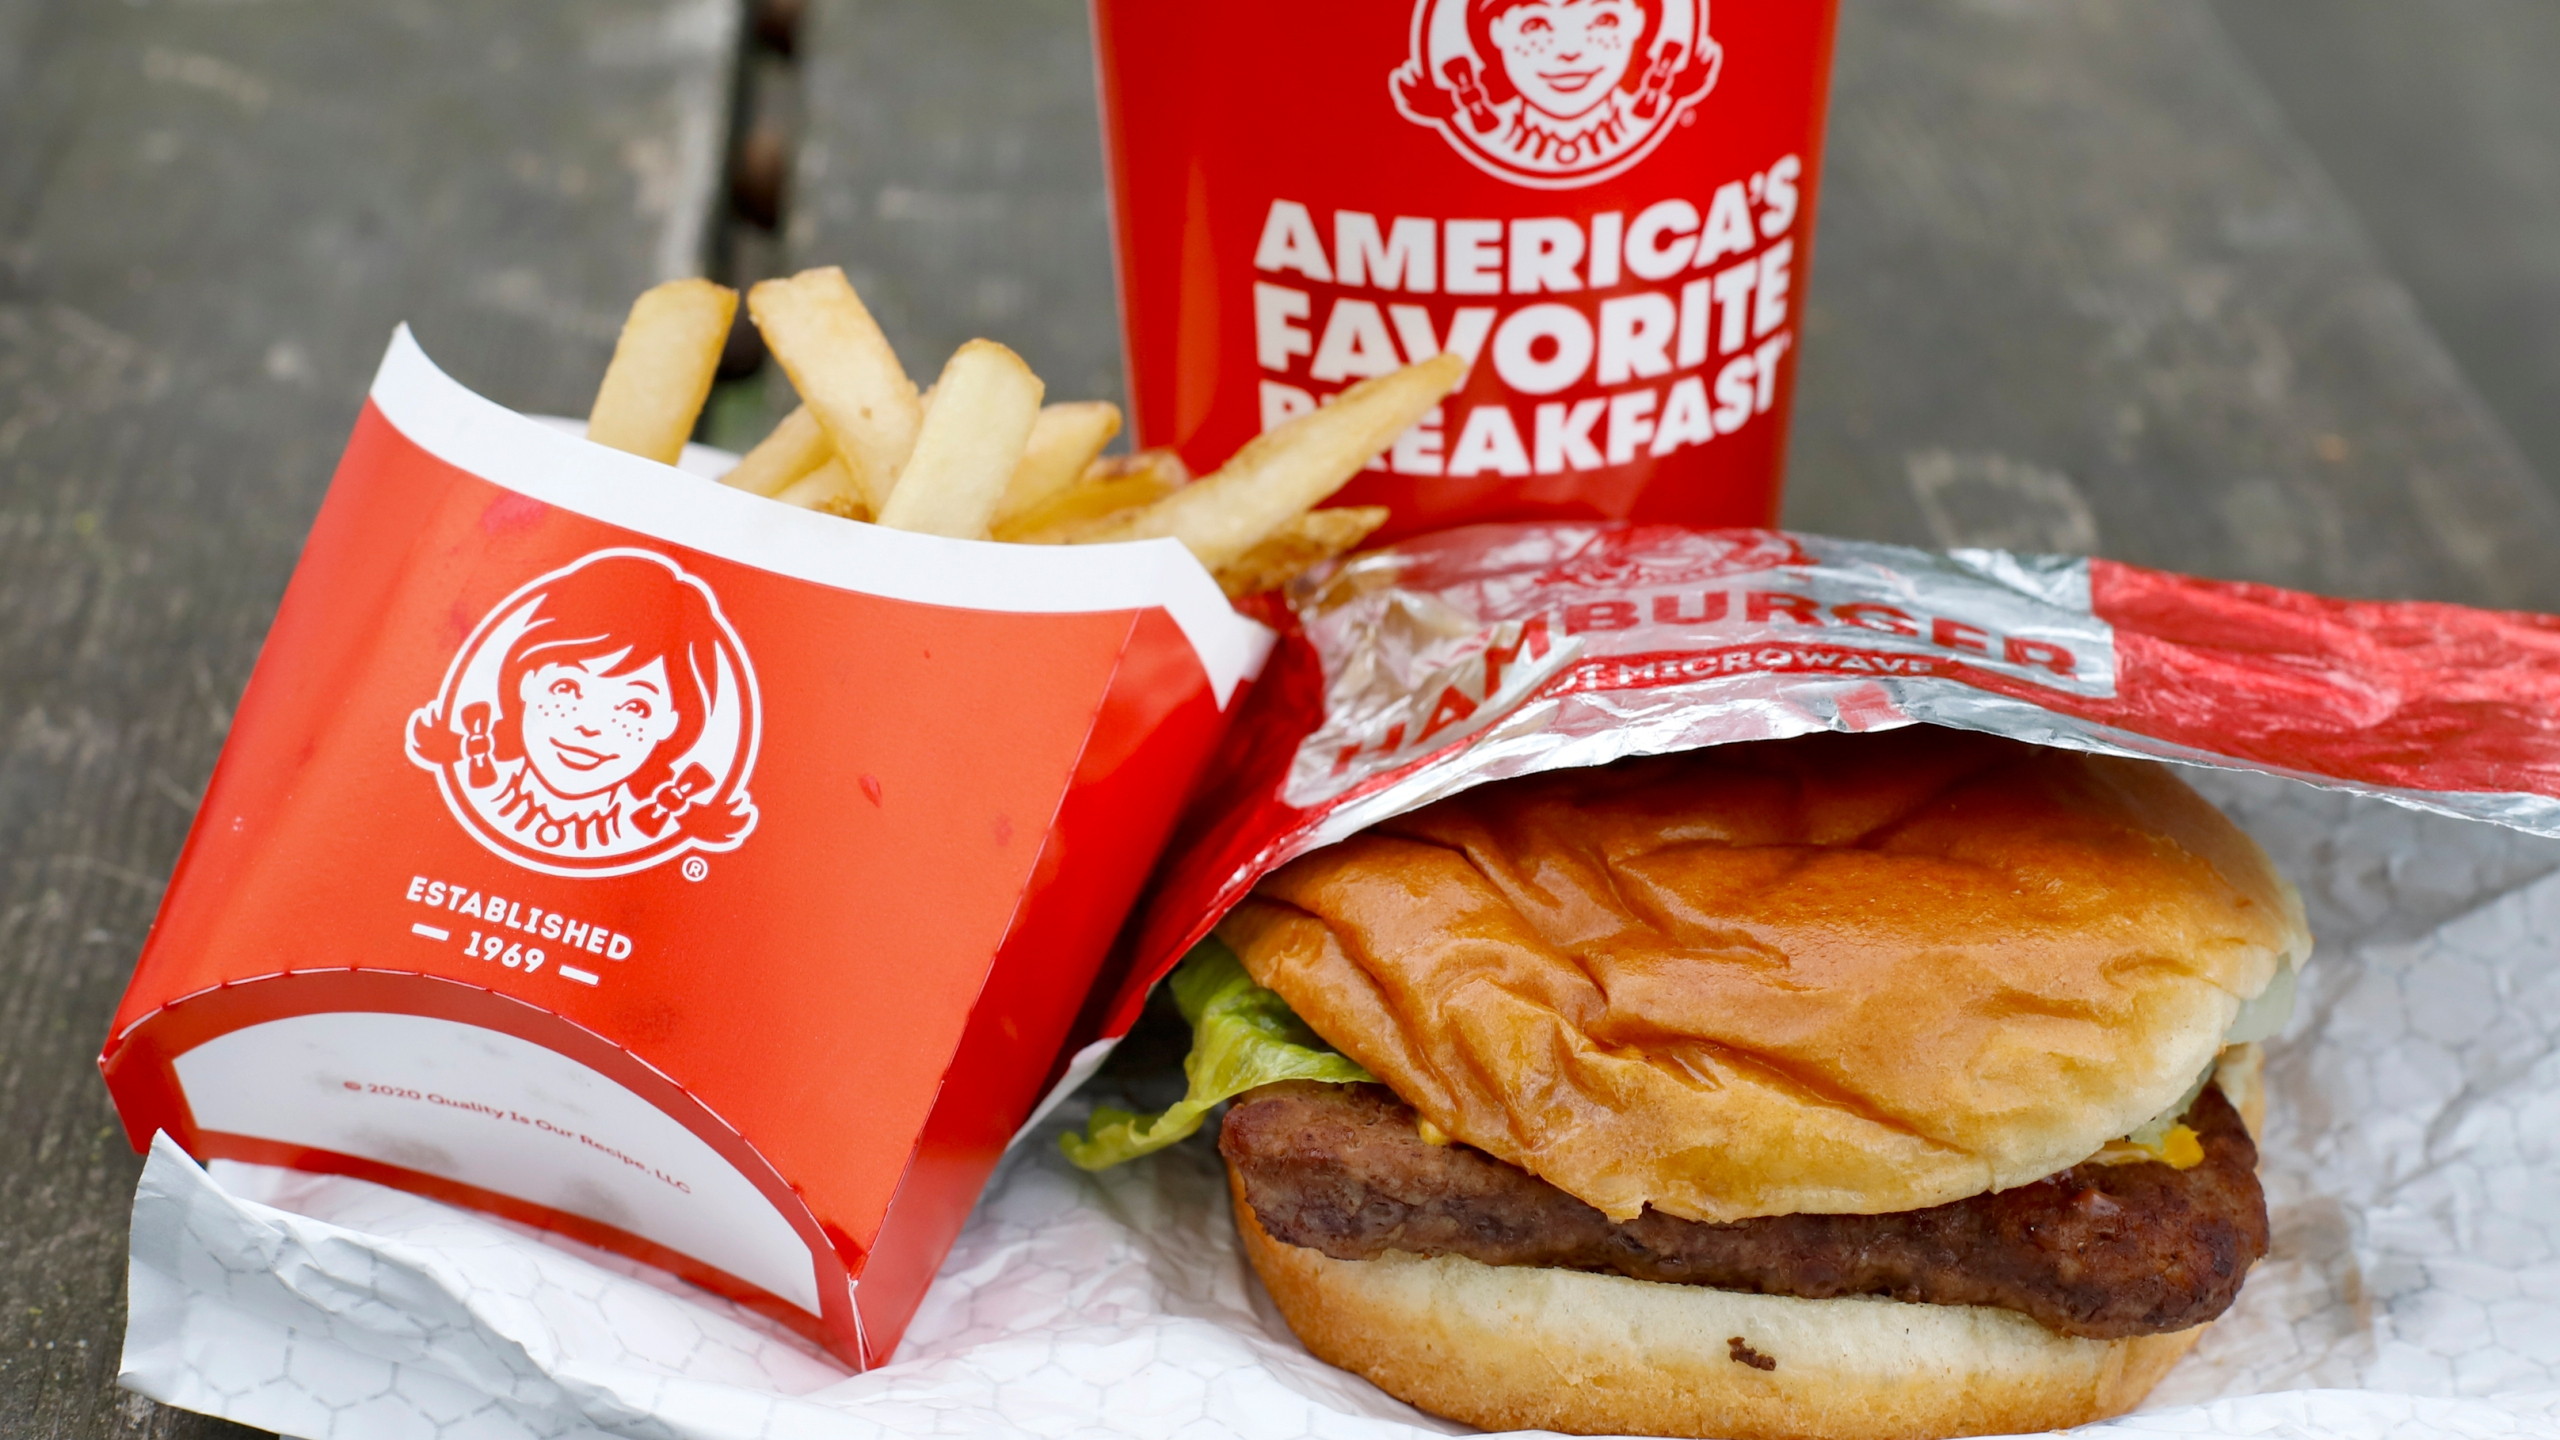 In this May 5, 2020, file photo, Wendy's restaurant Dave's Combo cheeseburger meal is displayed in Pittsburgh. (AP Photo/Gene J. Puskar, File)